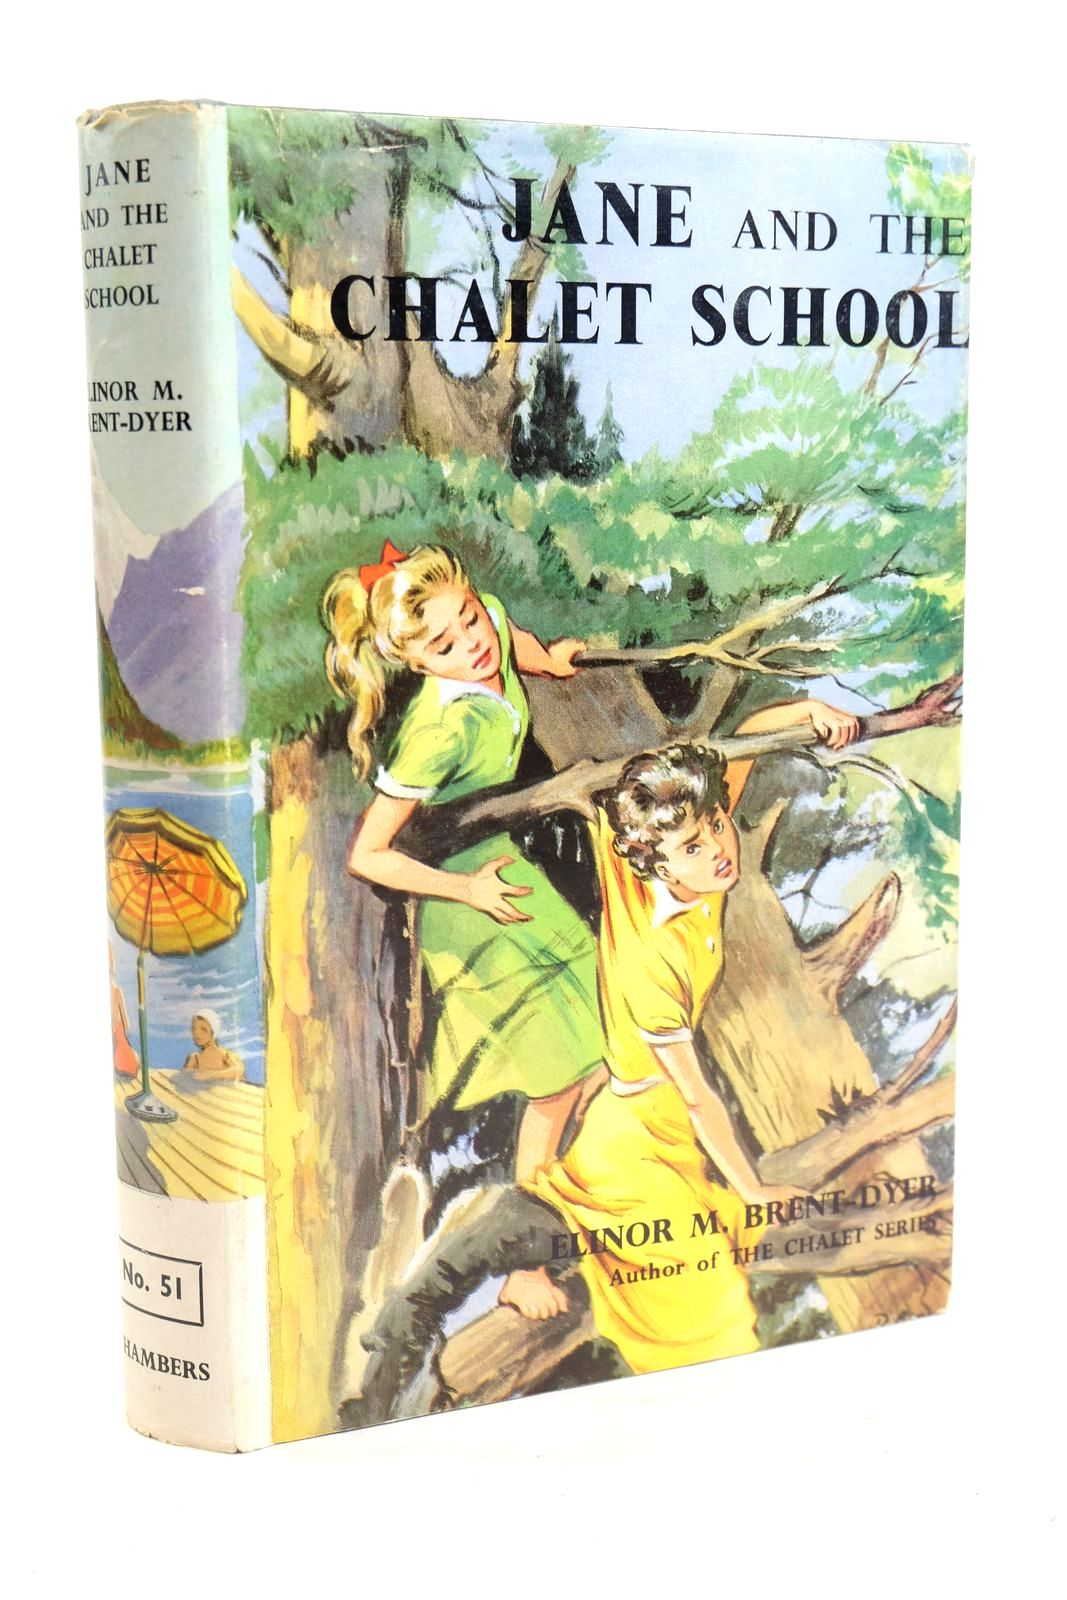 Photo of JANE AND THE CHALET SCHOOL written by Brent-Dyer, Elinor M. published by W. & R. Chambers Limited (STOCK CODE: 1320112)  for sale by Stella & Rose's Books